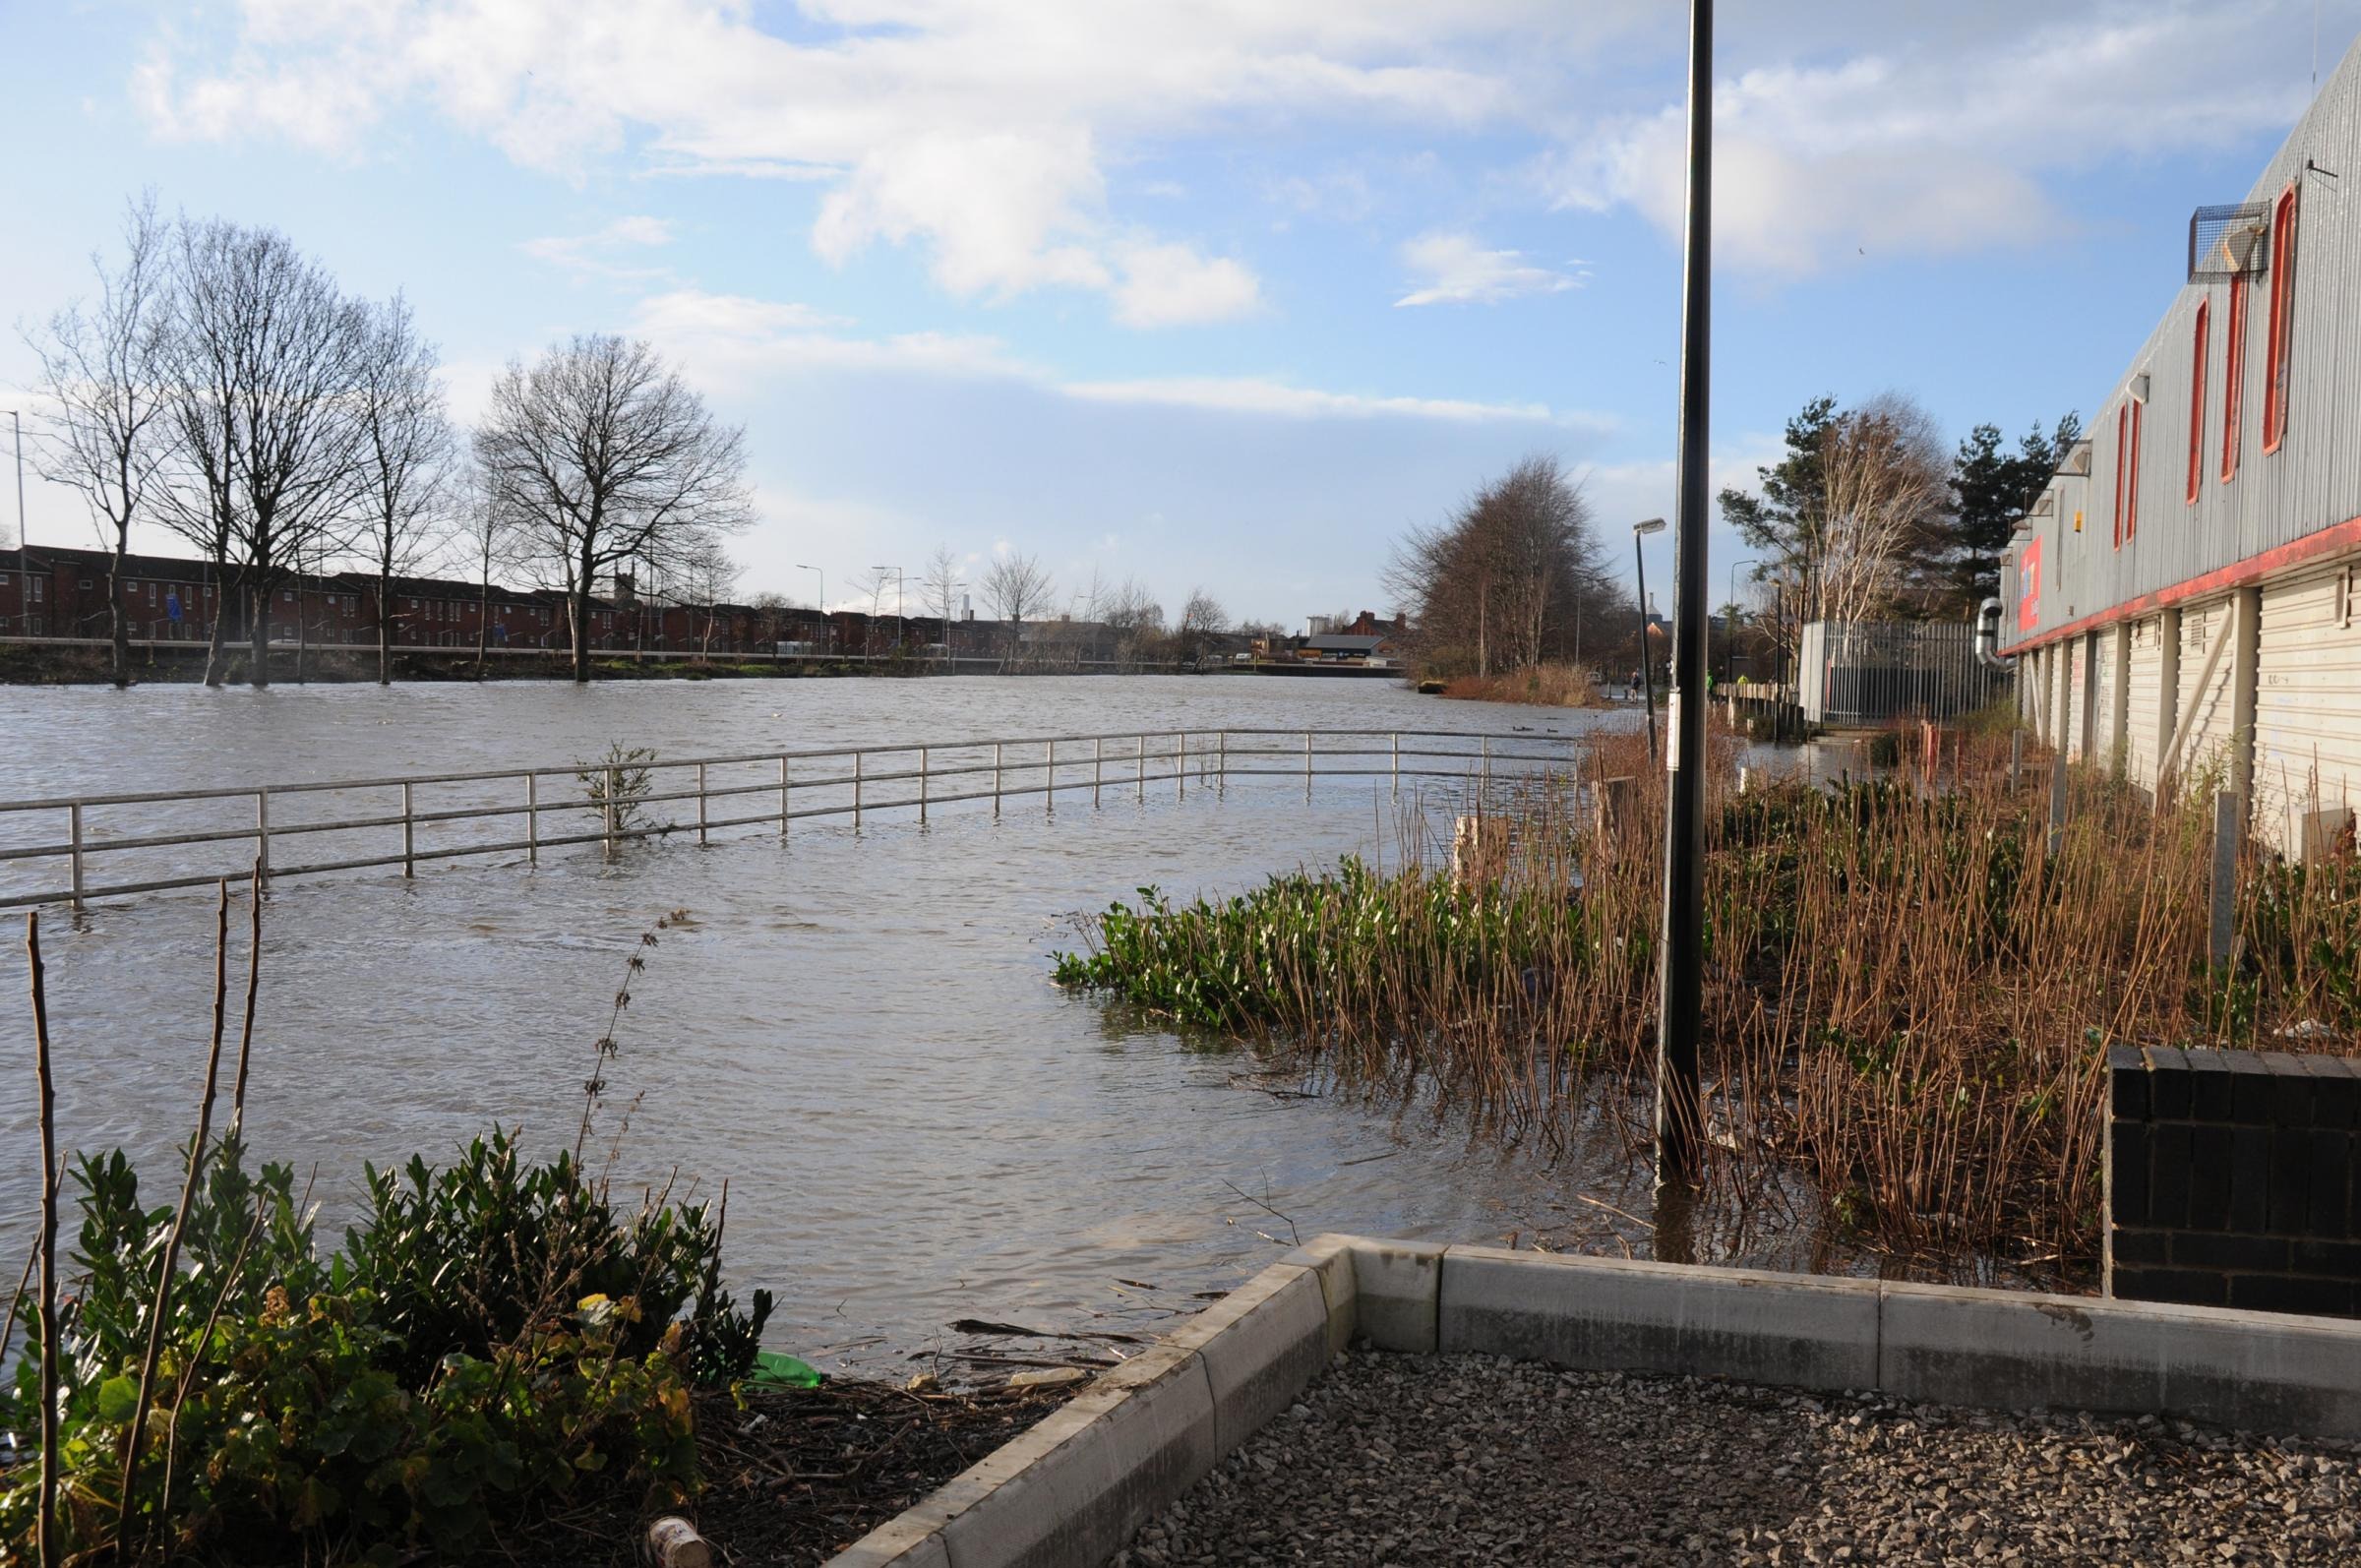 UPDATED: Retail park reopens following flood warning